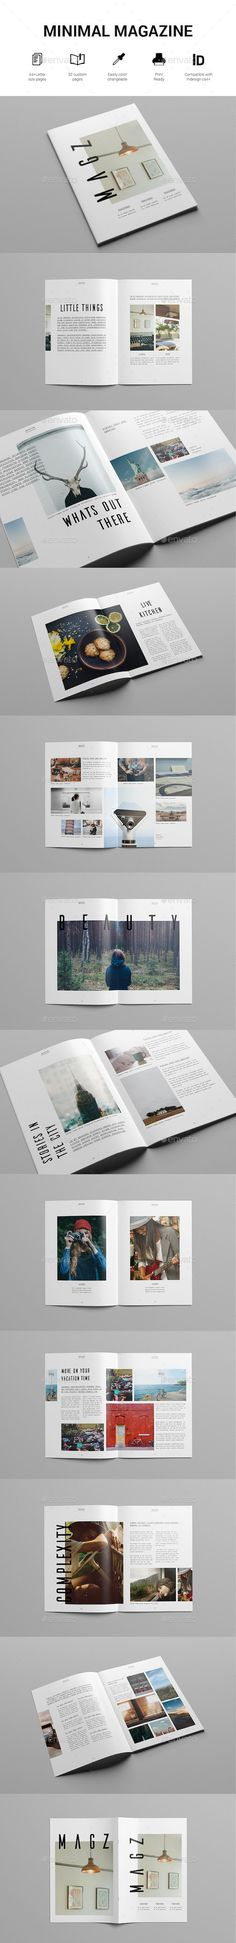 Minimal Lifestyle Magazine Template PSD #design Download: http://graphicriver.net/item/minimal-lifestyle-magazine-template/13489075?ref=ksioks